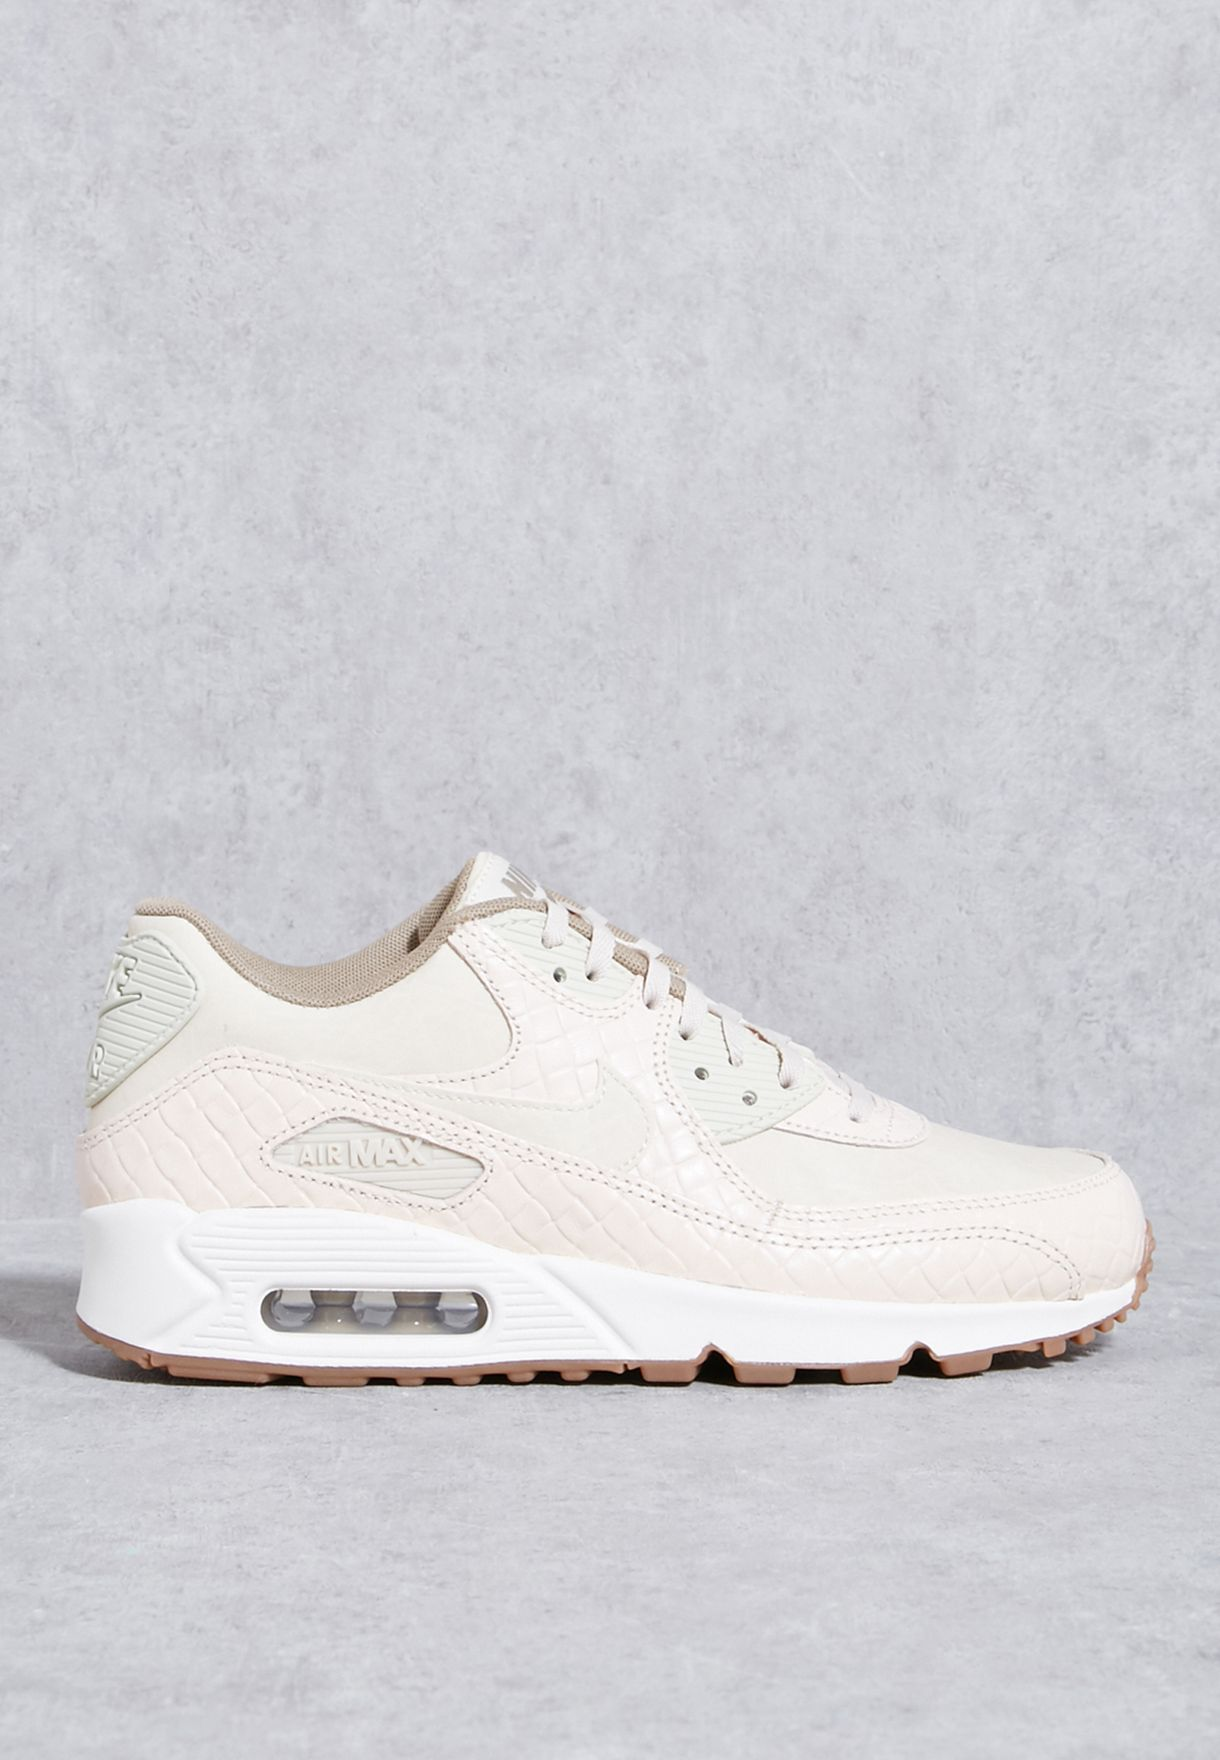 finest selection 6c3f0 979df Air Max 90 Premium